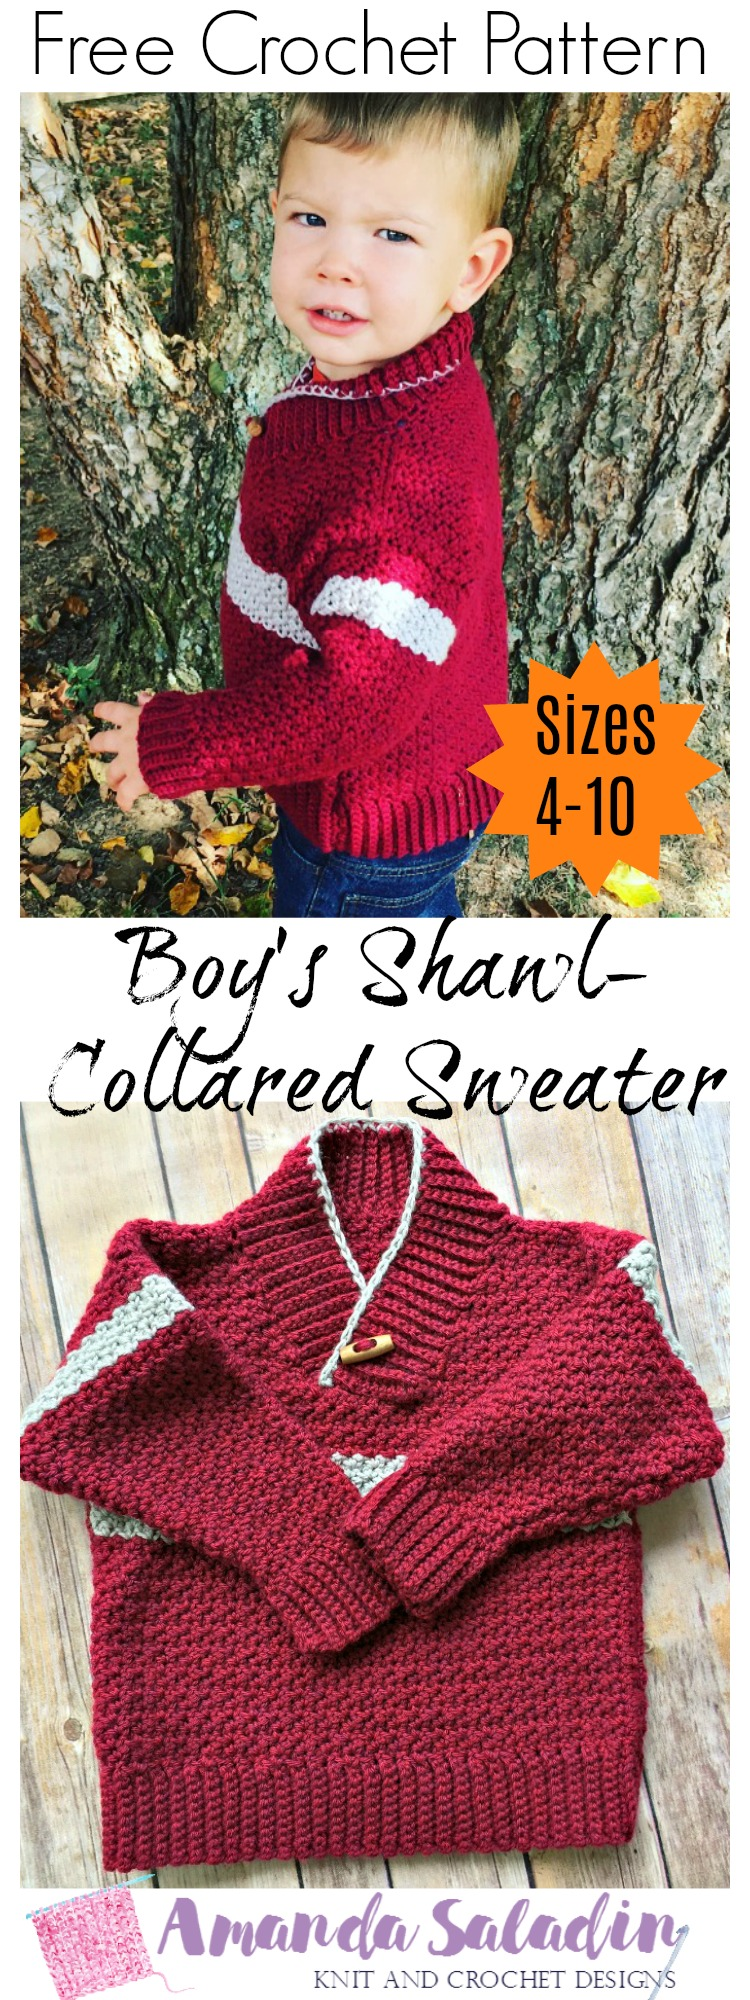 Free Crochet Pattern - Boy's Shawl-Collared Pullover